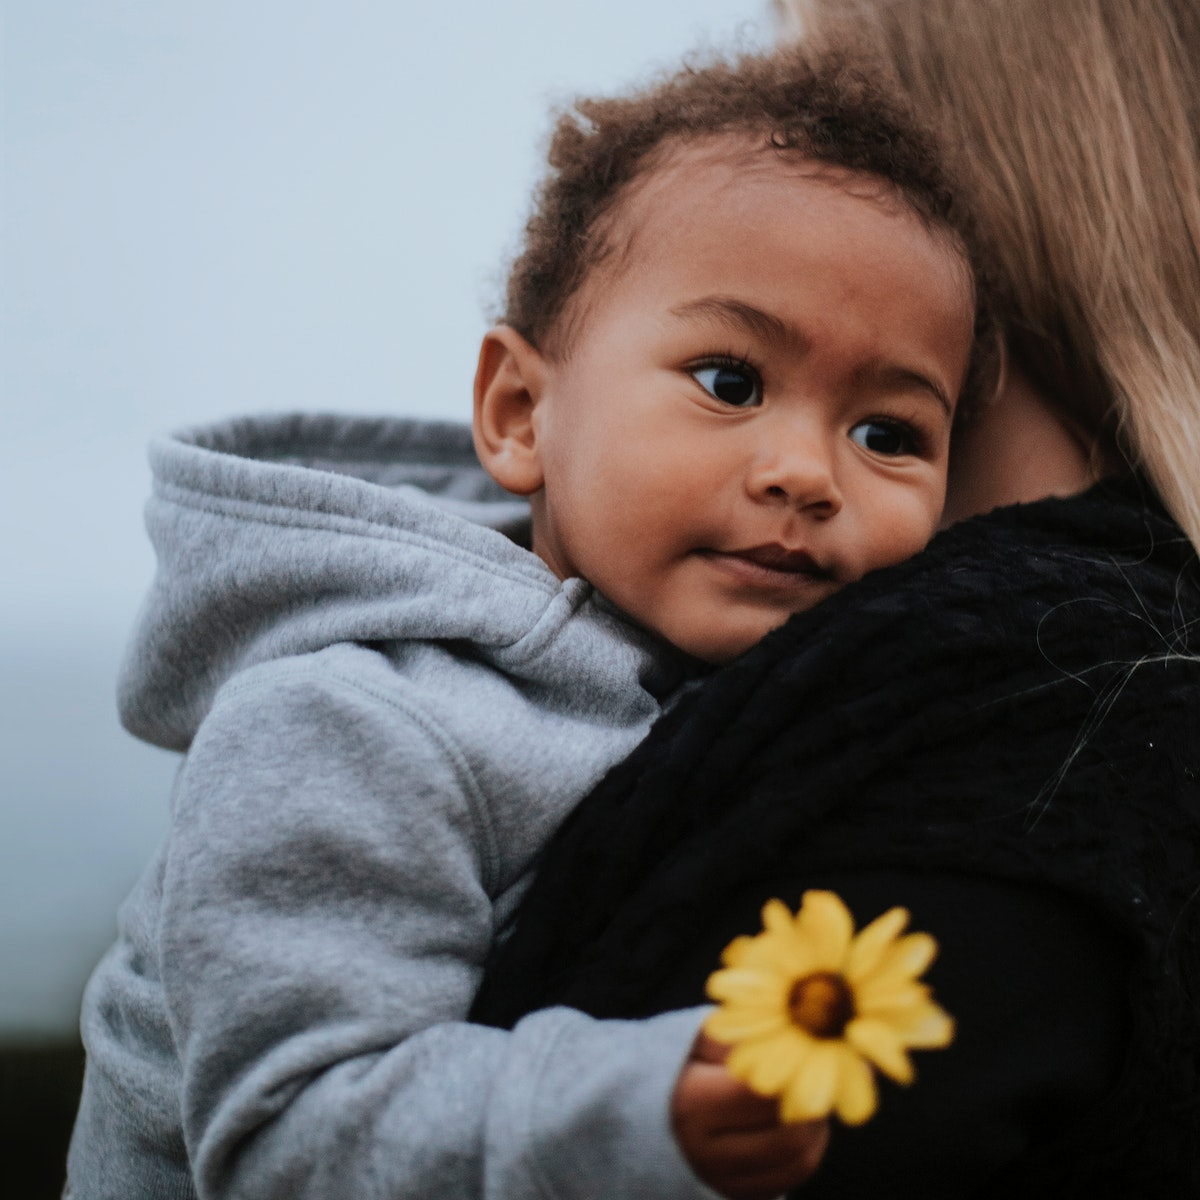 Young boy holding a flower while being carried by his mom